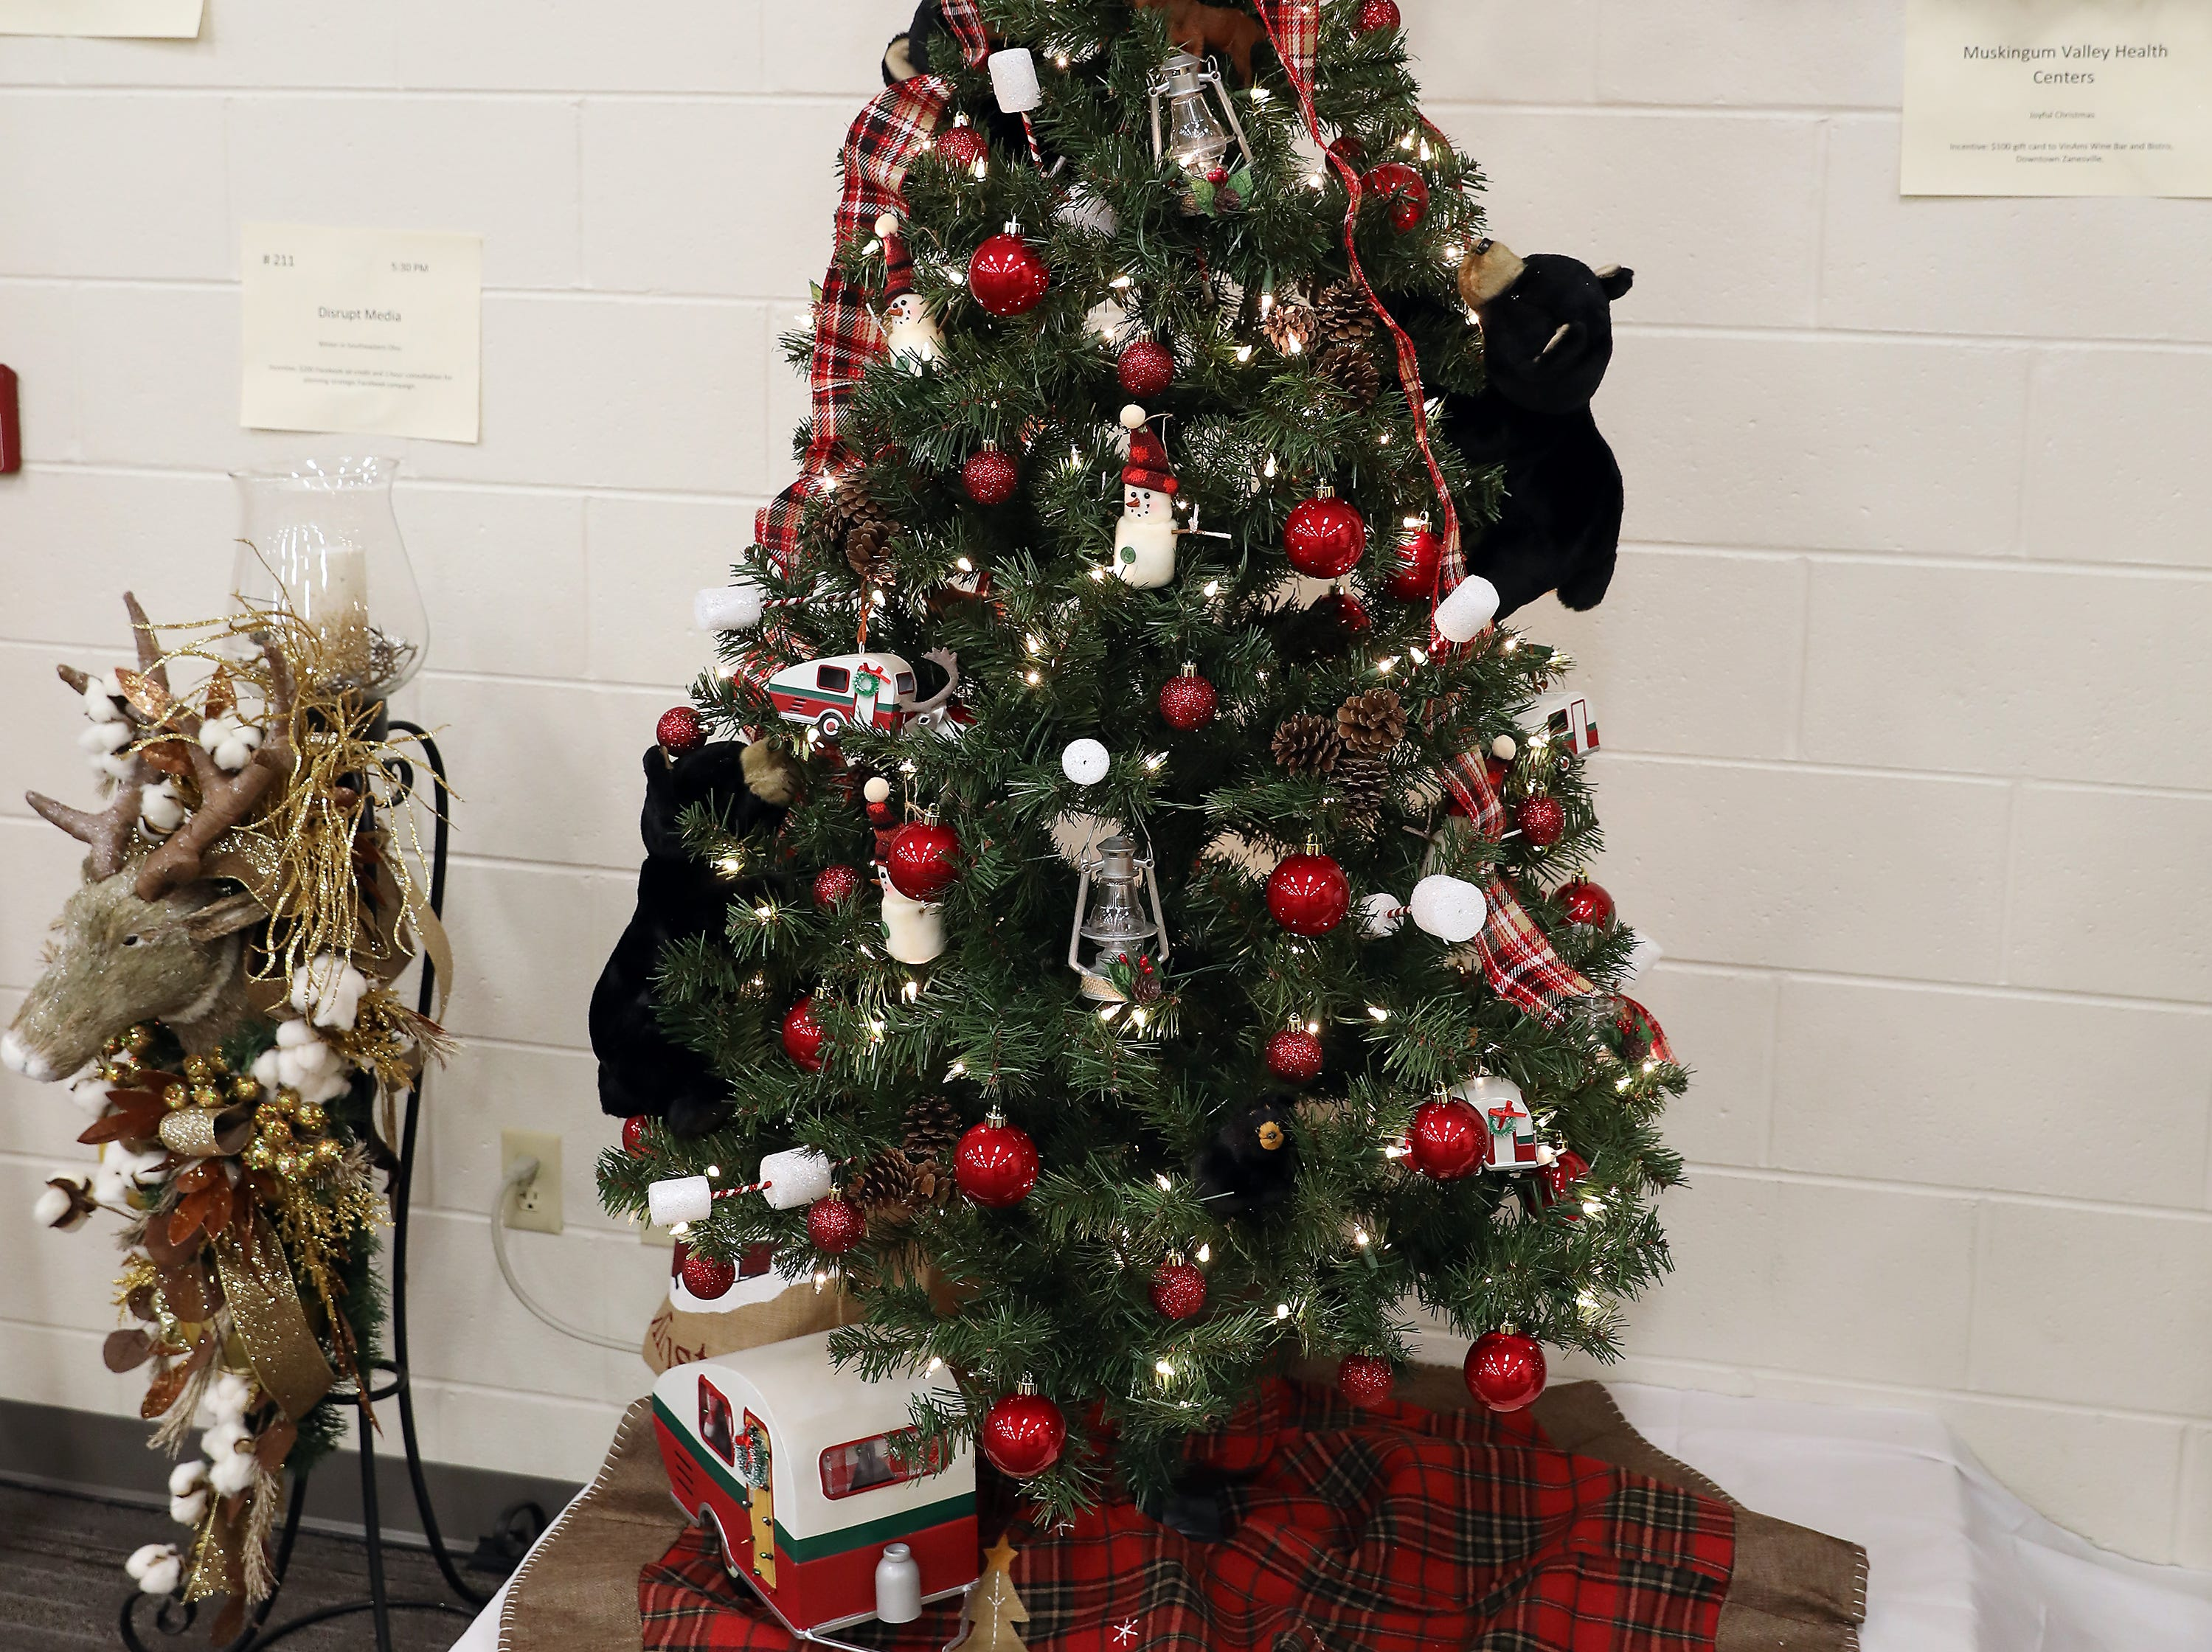 153	3:00 PM	Carr Center	Large Tree	I'll be Camping for Christmas	Rustic, woodland inspired 6' pre-lite Alberta Spouse tree with clear lights decorated with a camping theme and forest creatures.		$50 Ohio State Park gift card, including little cuddly black bears.